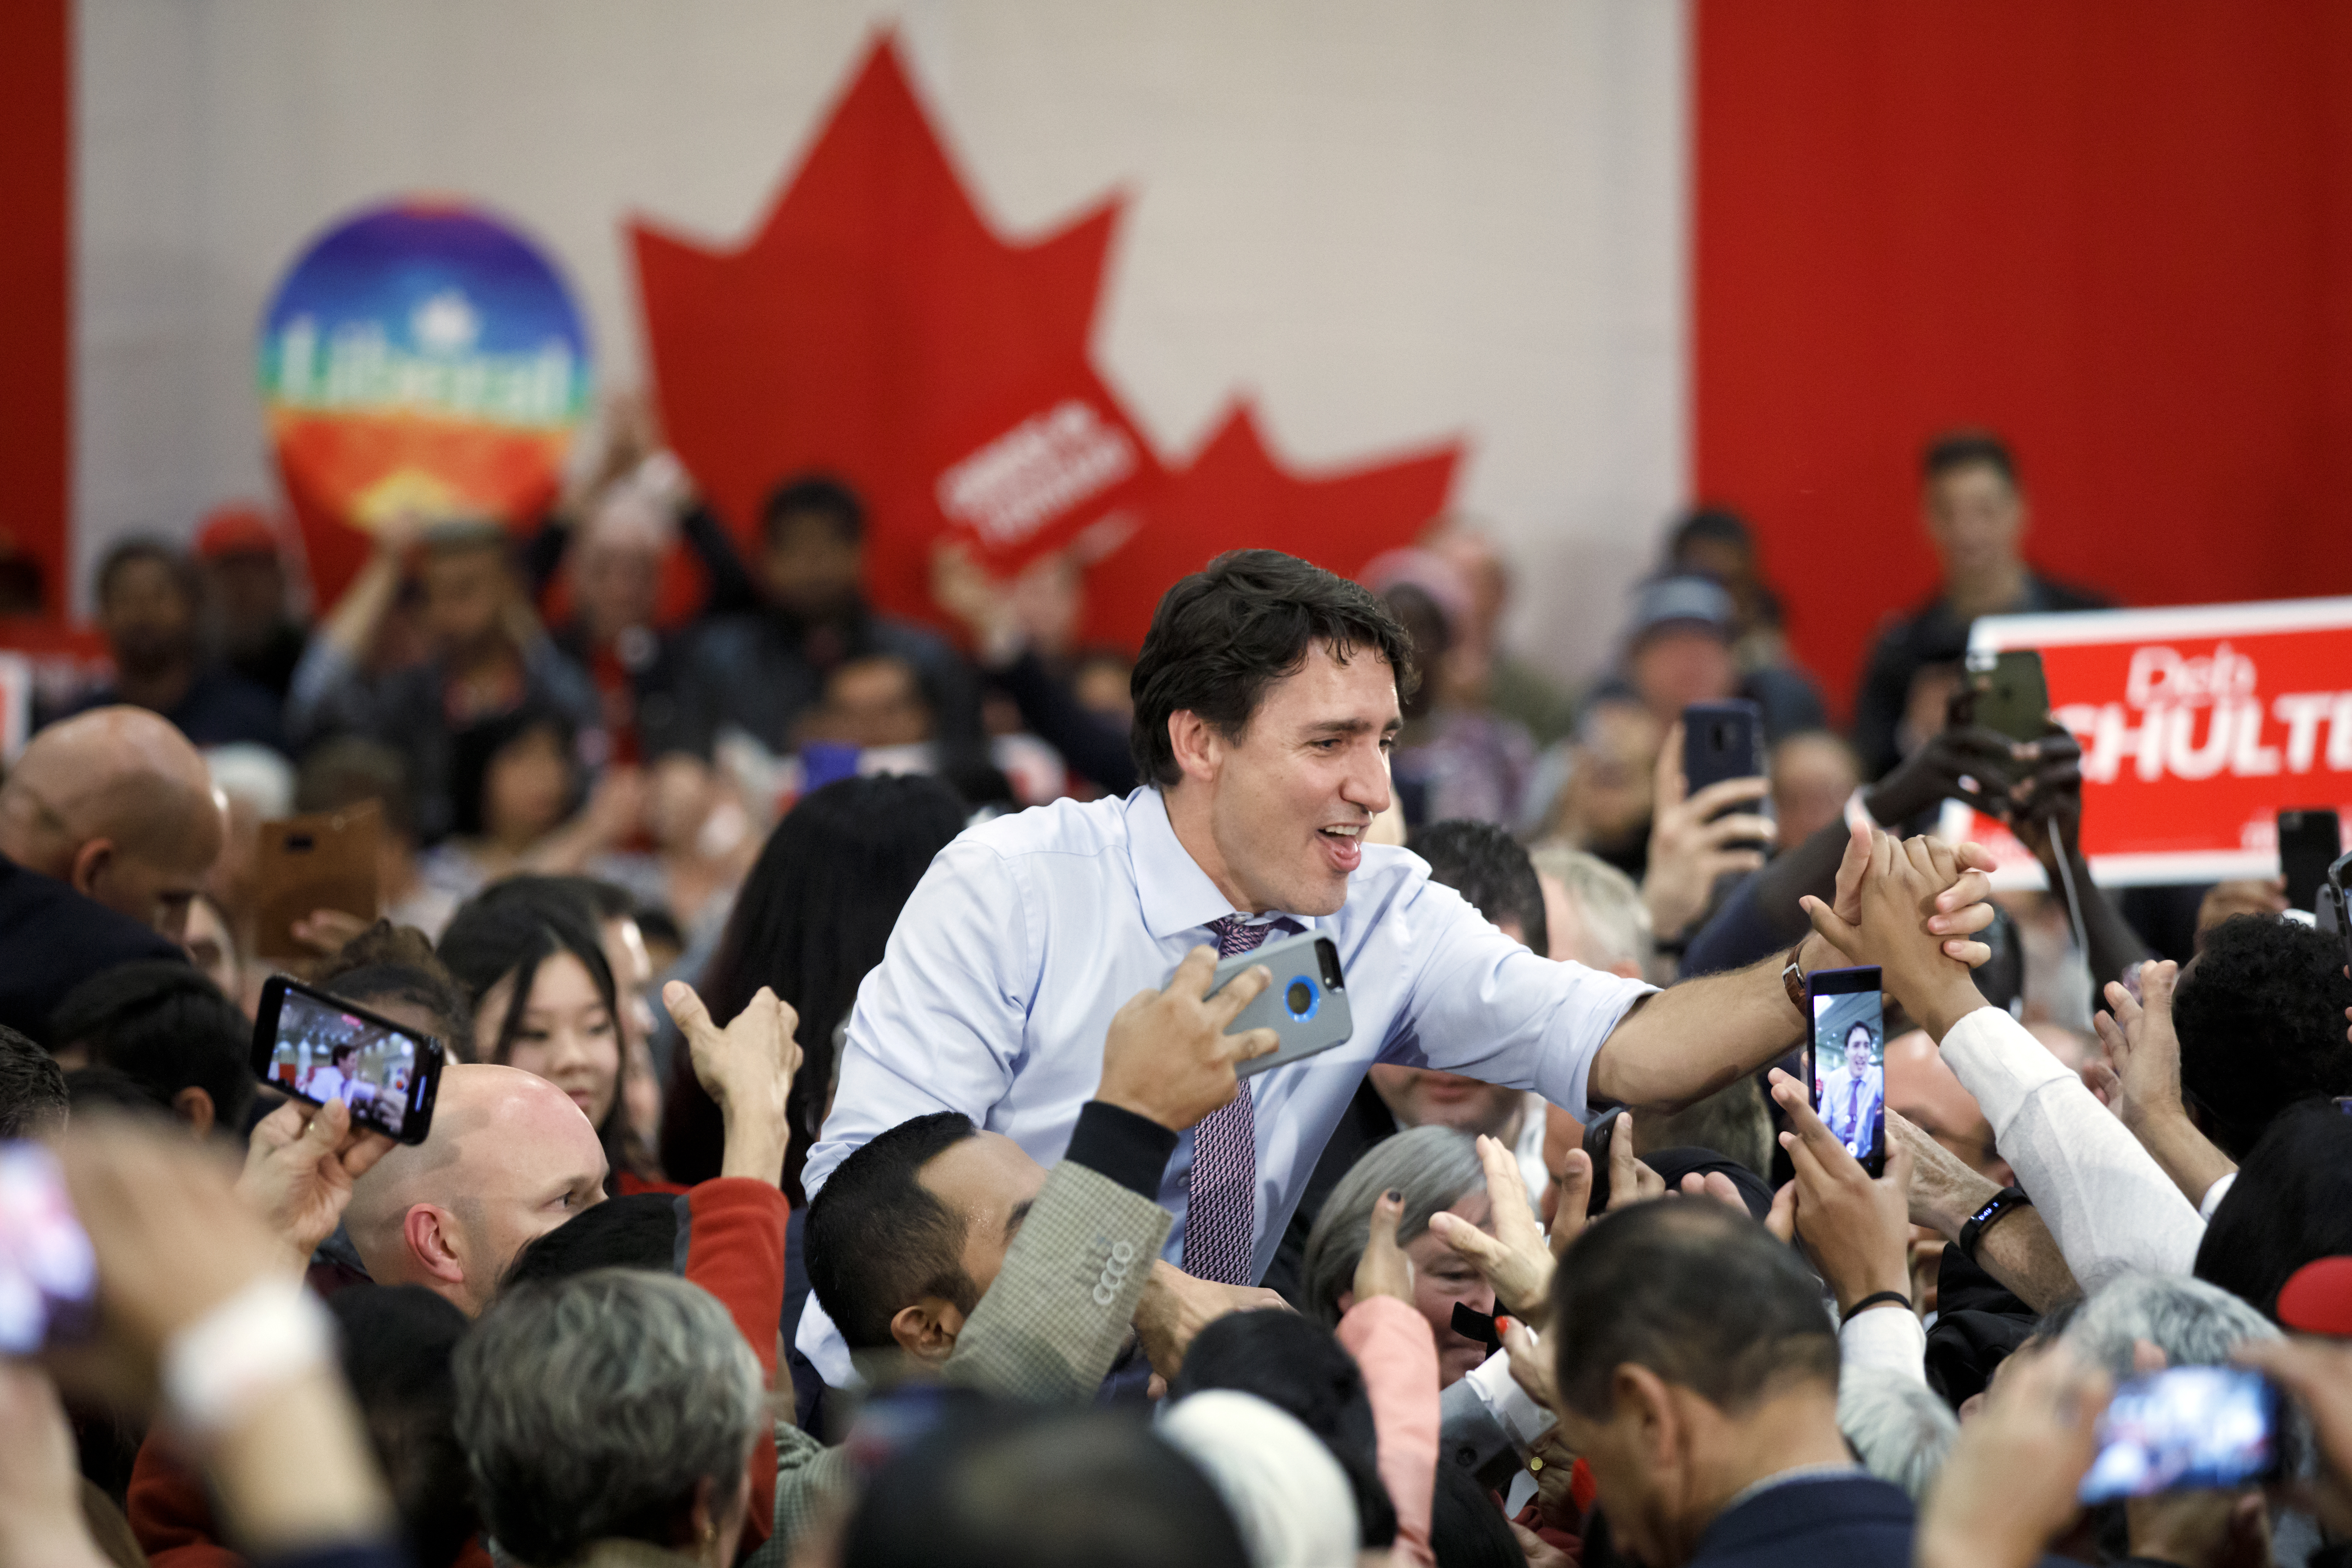 Prime Minister Justin Trudeau Holds A Campaign Rally In Vaughan, Ontario